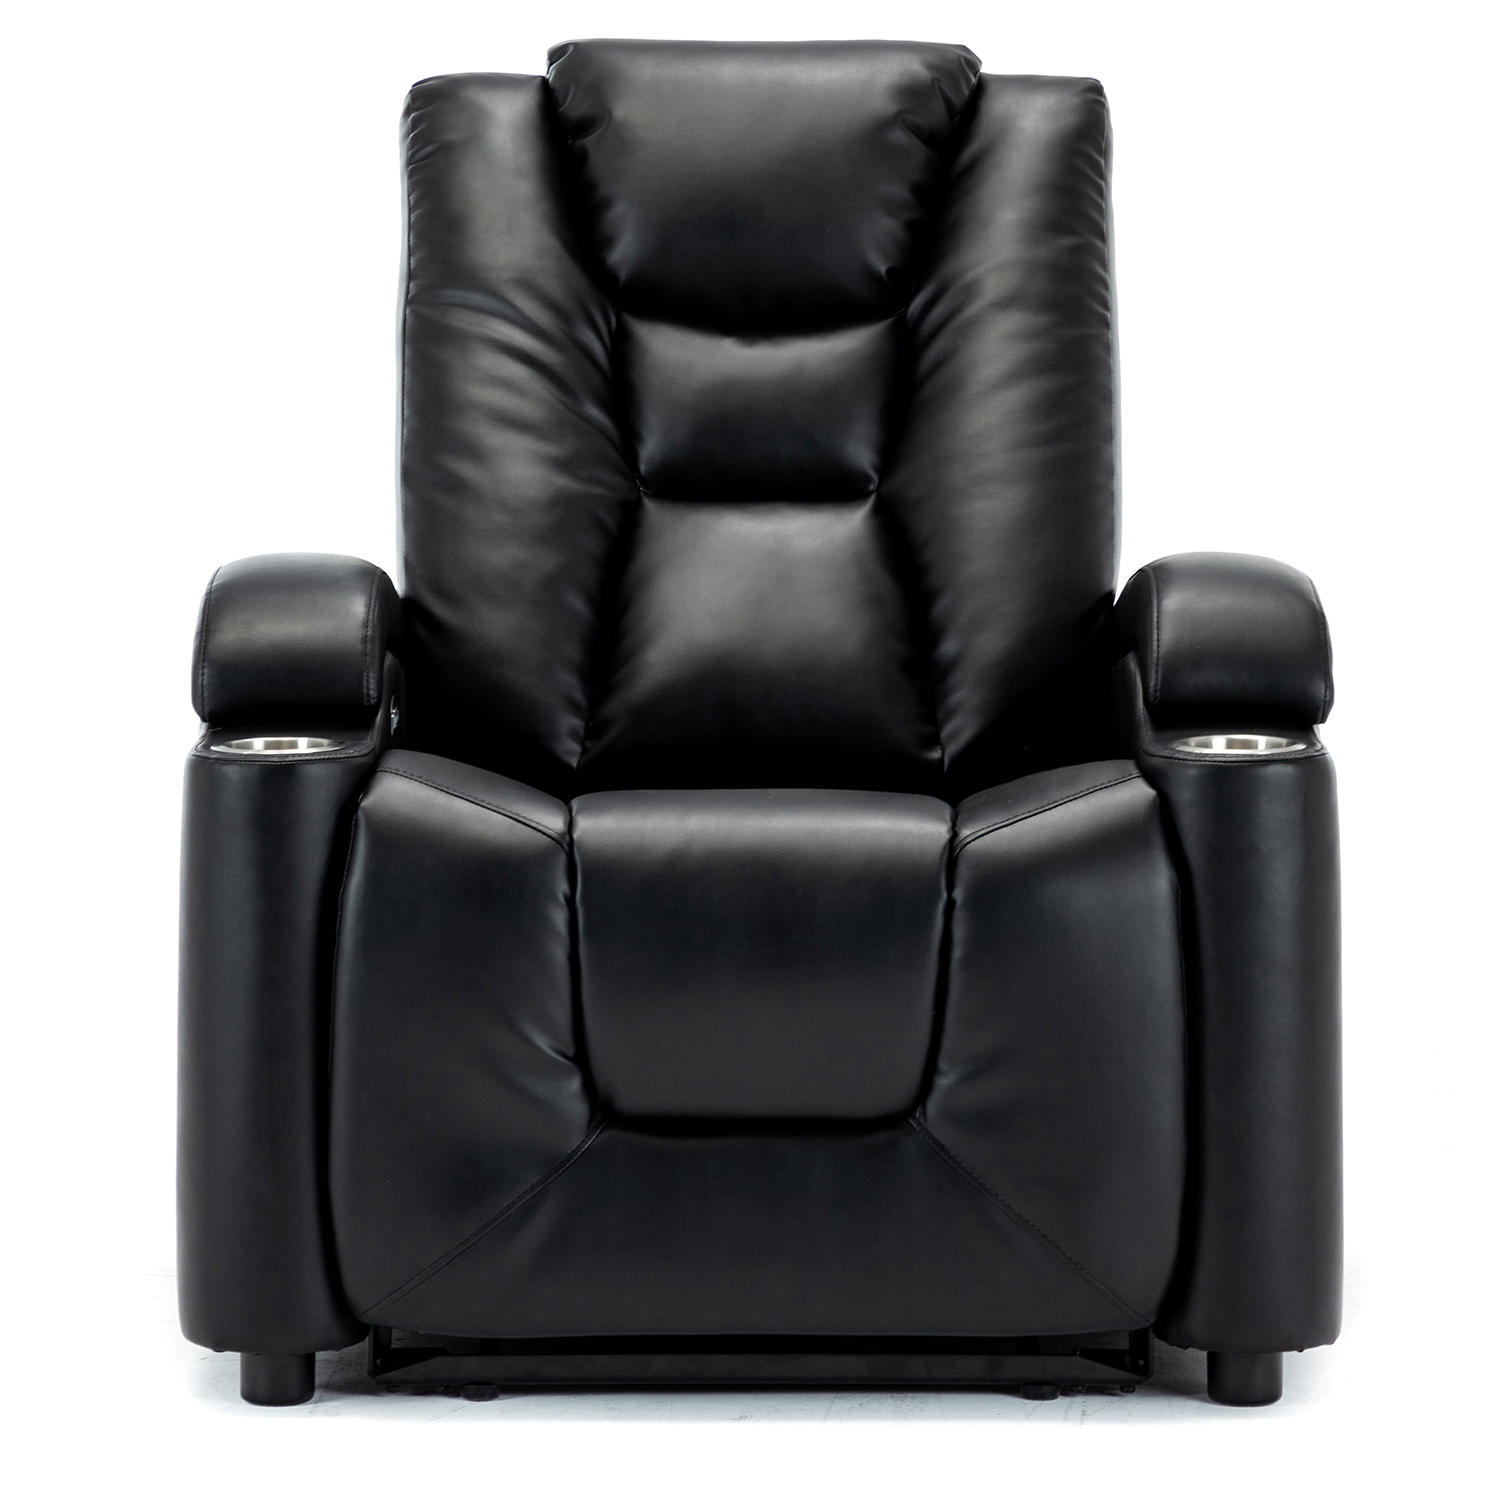 Jackson Power Theater Recliner with Power Adjustable Headrest